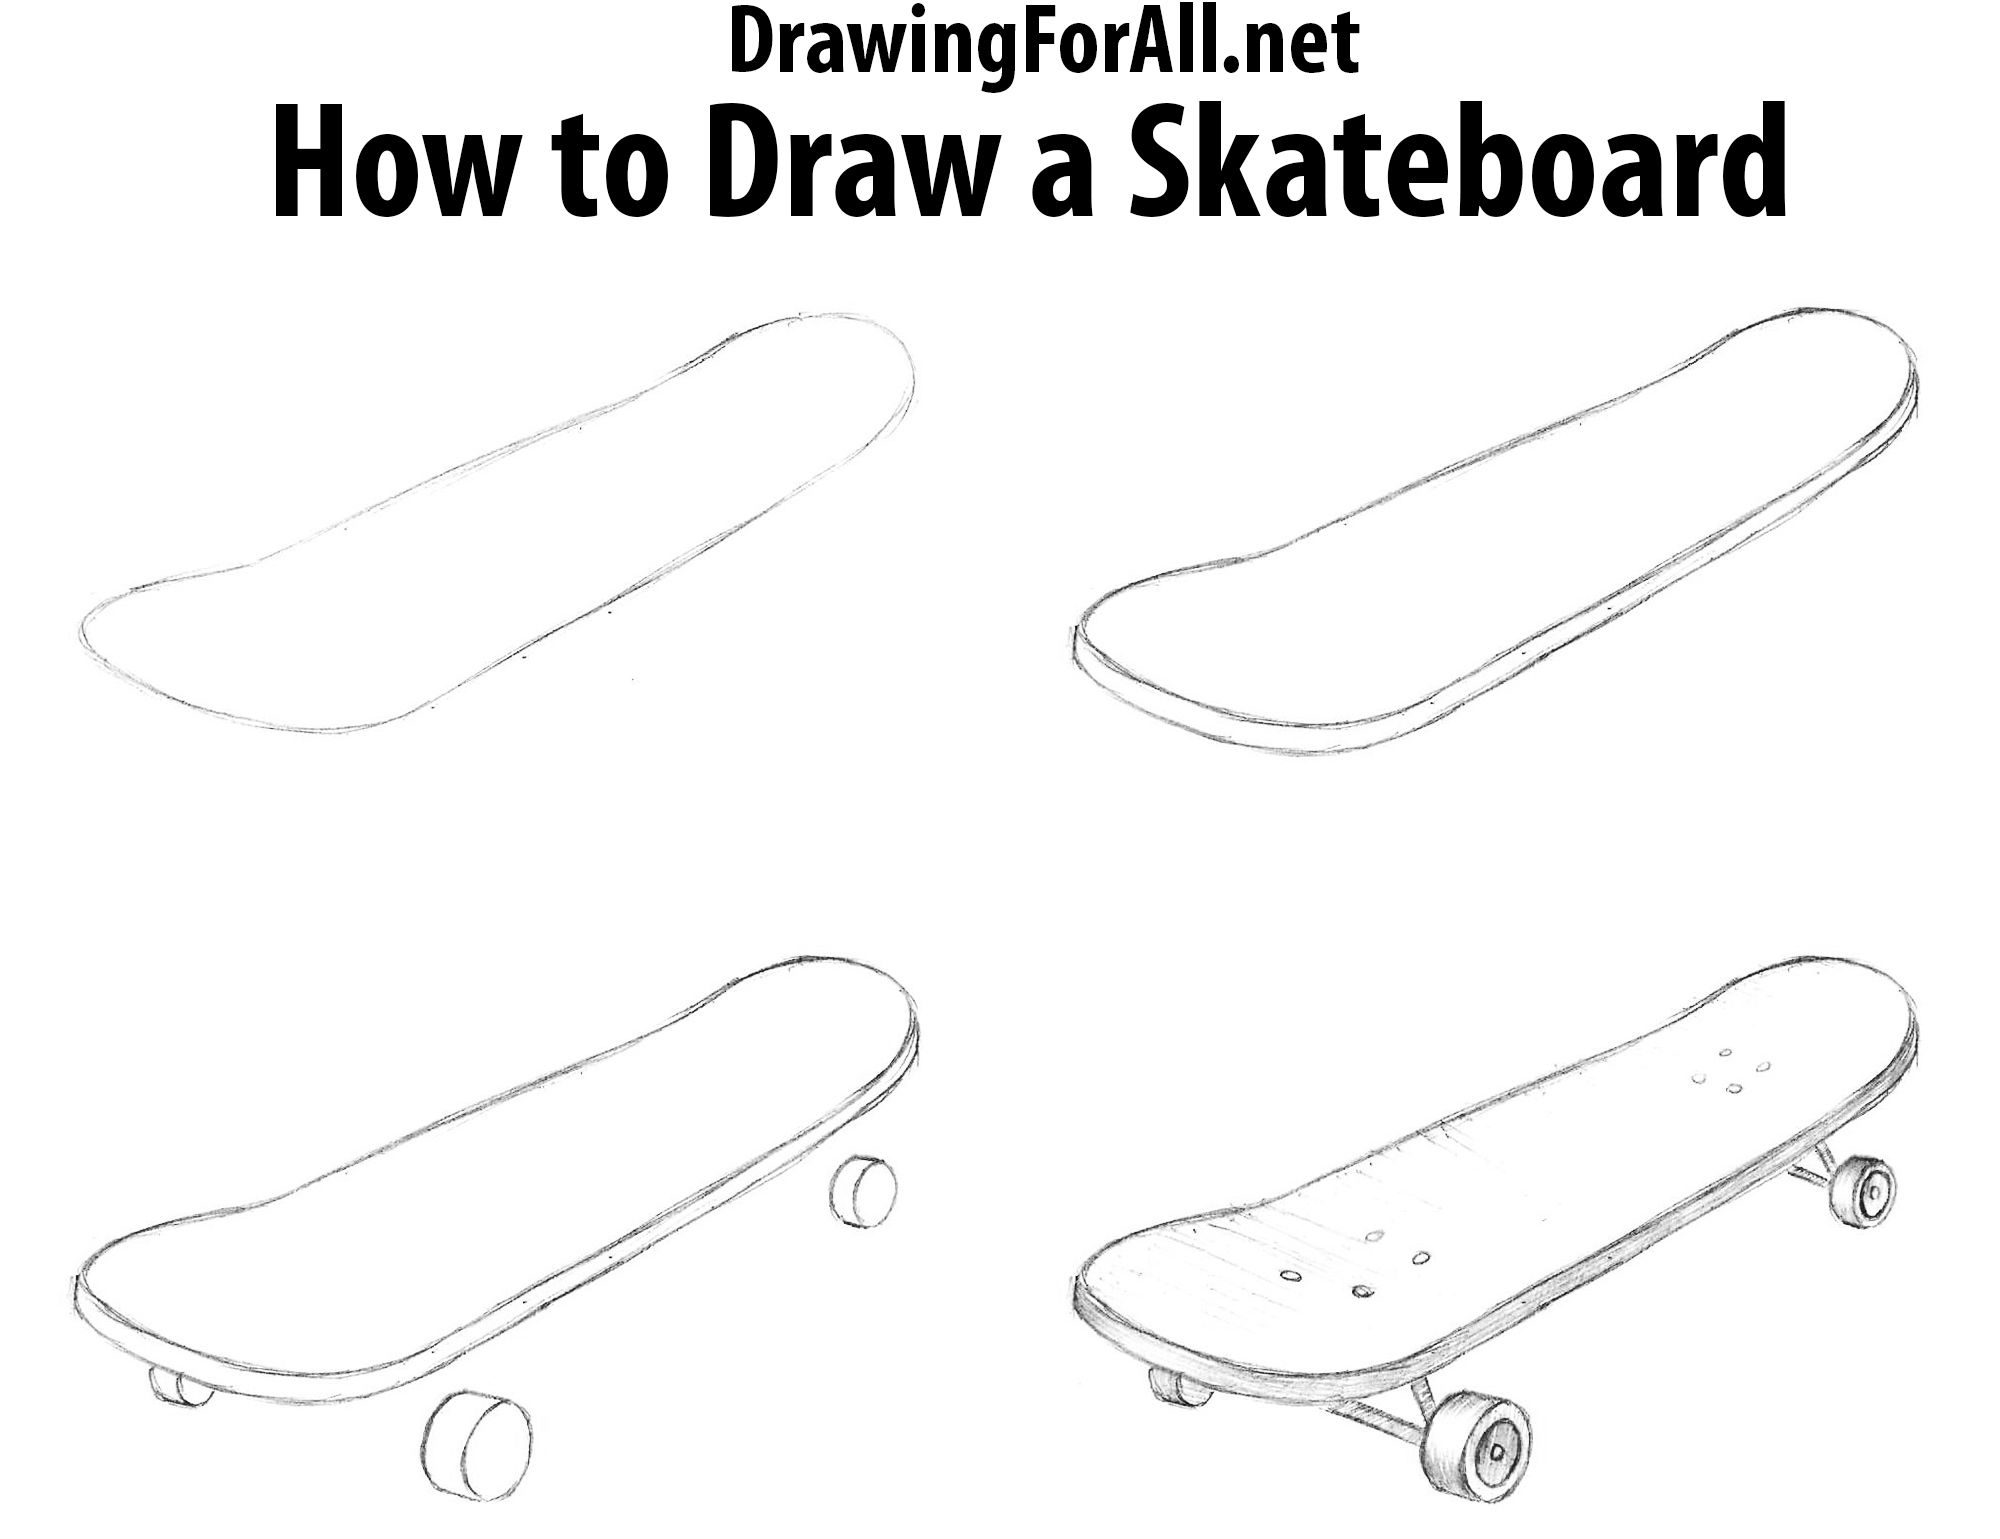 How To Draw A Skateboard Easy Drawings Skateboard Pencil Sketches Easy